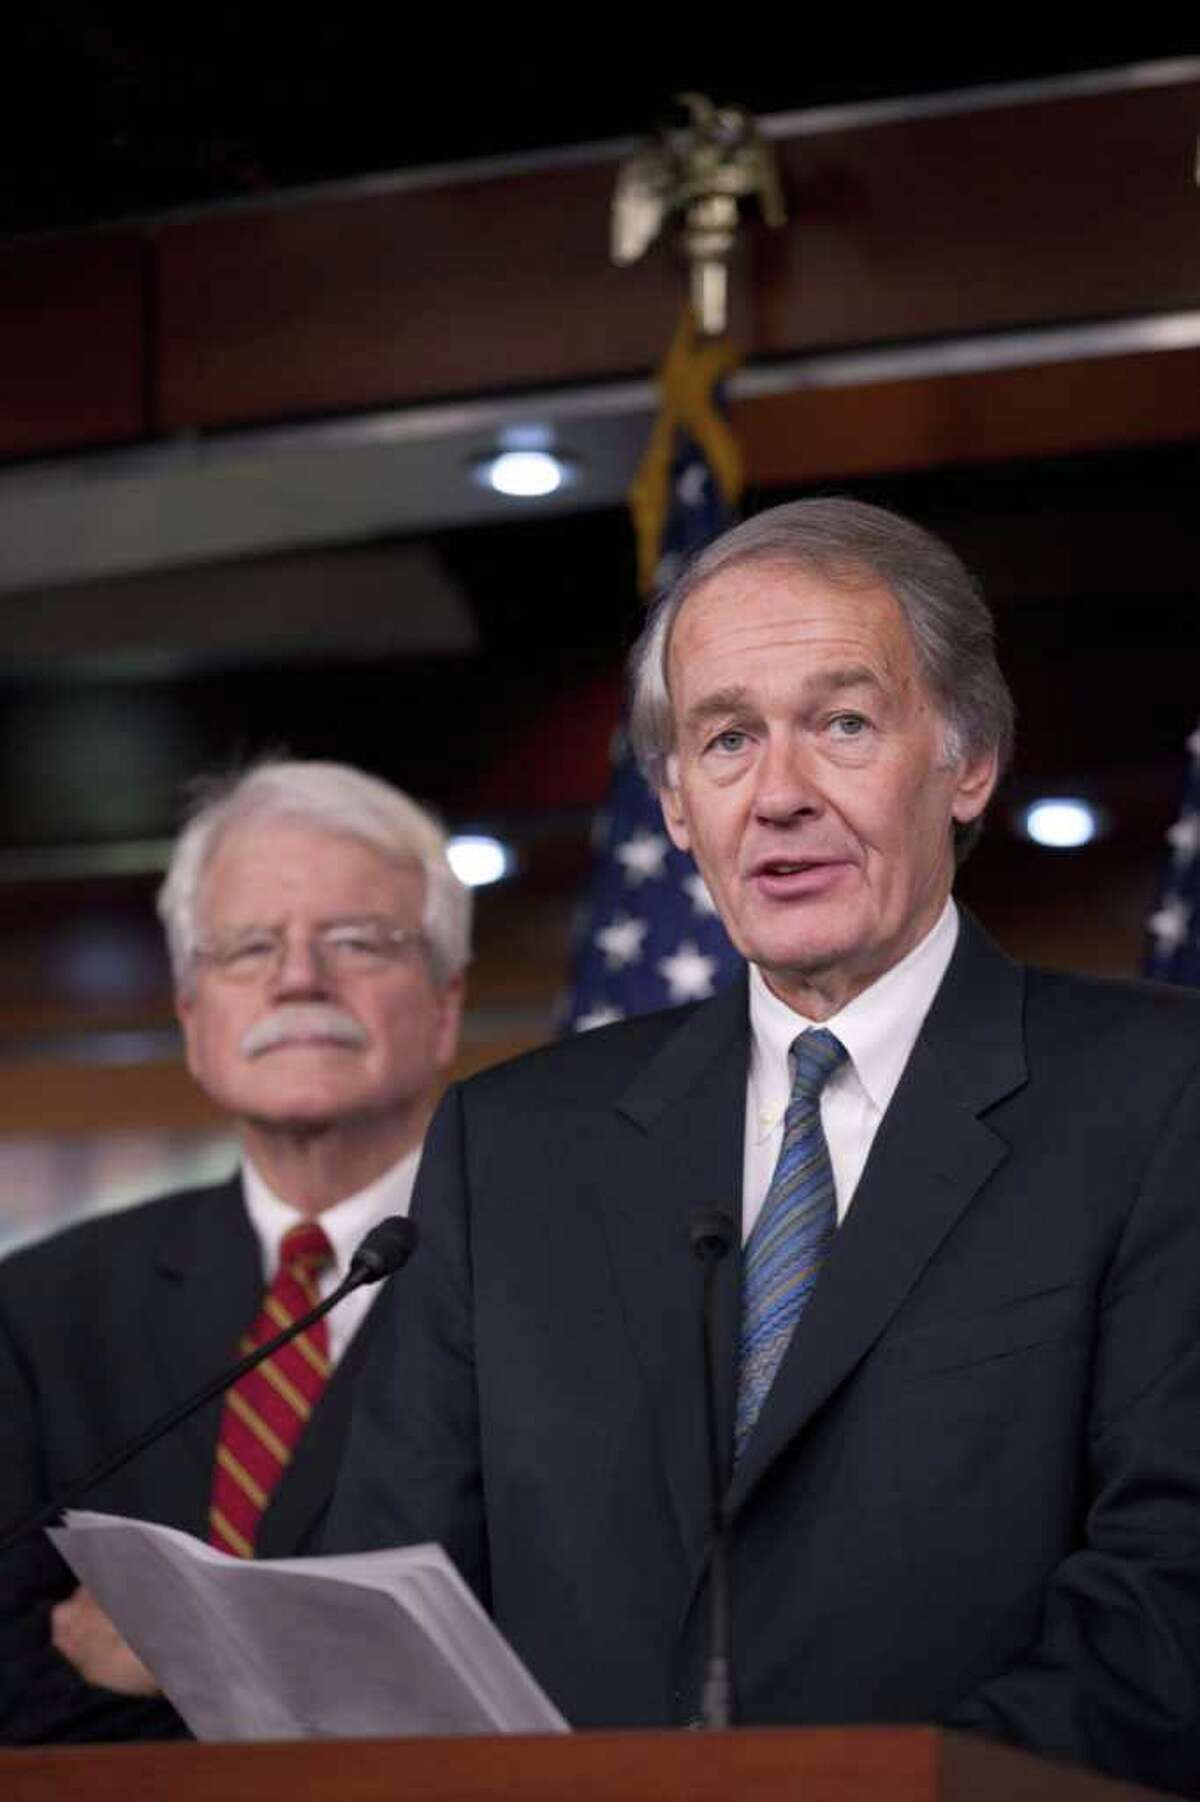 Rep. Ed Markey, D-Mass., right, accompanied by Rep. George Miller, D-Calif., speaks during a news conference on Capitol Hill in Washington, Wednesday, Jan. 26, 2011, to discuss the BP oil spill. (AP Photo/Harry Hamburg)